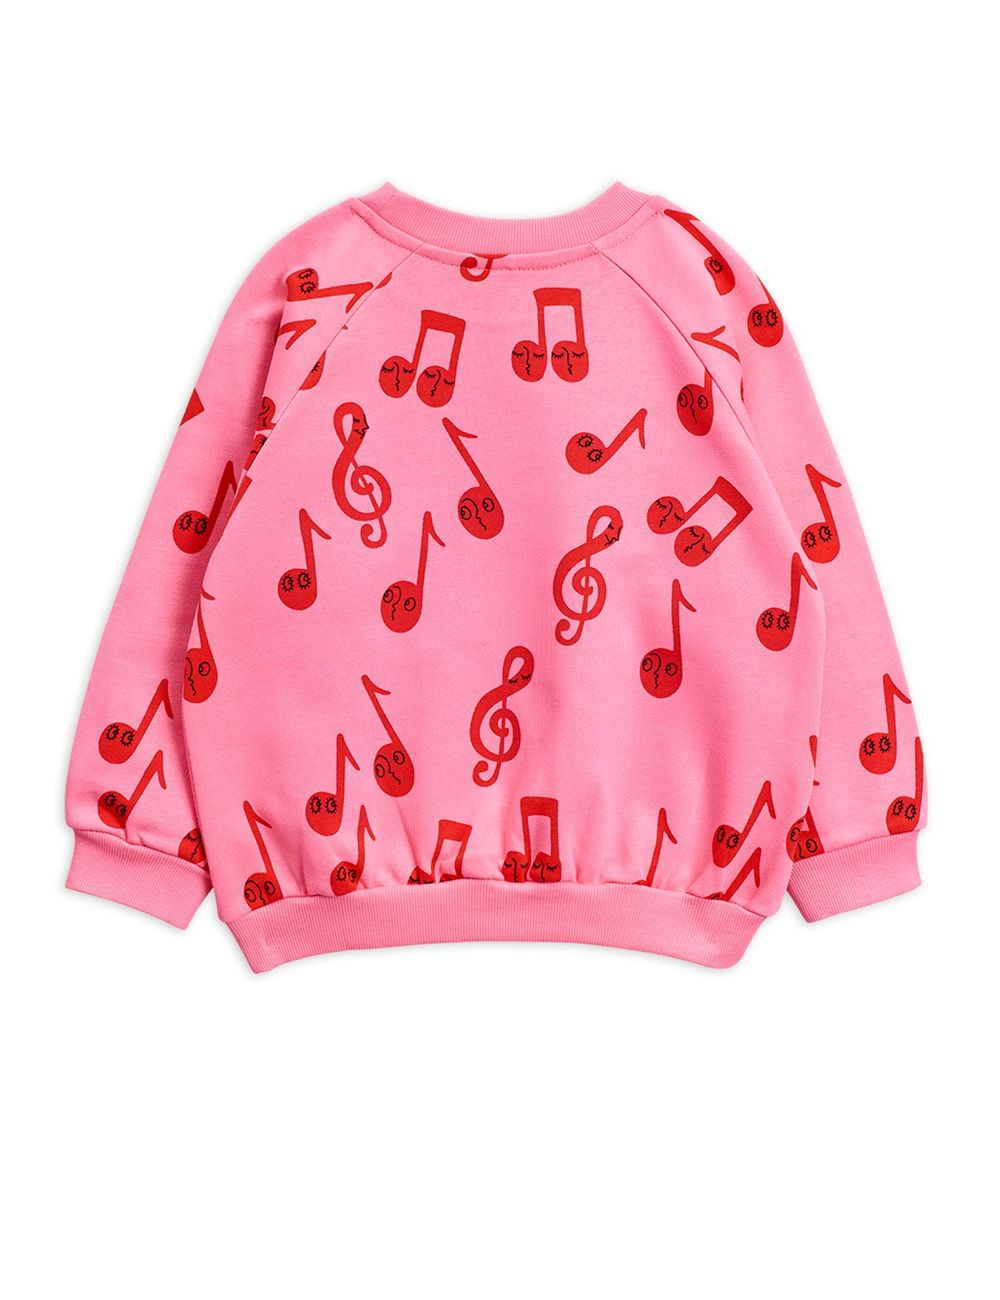 MINI RODINI NOTES AOP SWEATSHIRT, PINK